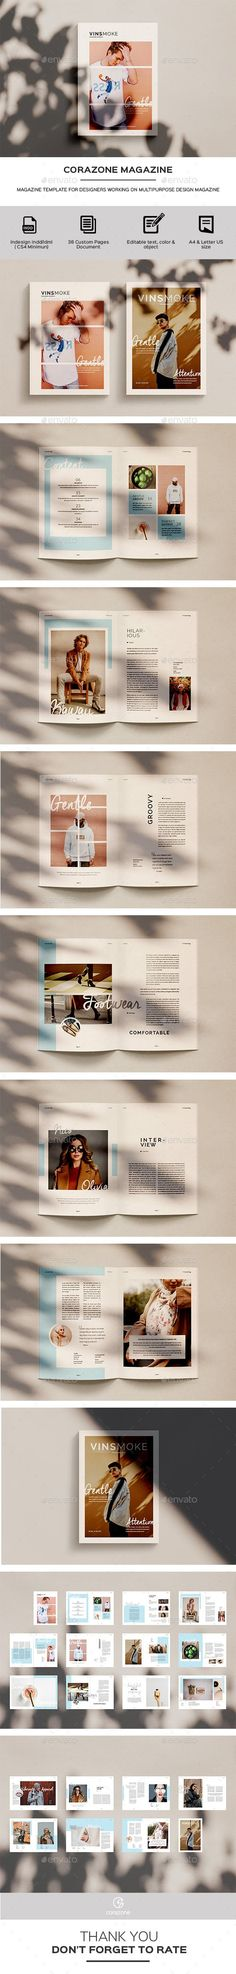 Multipurpose Magazine/Lookbook Template You Magazine, Magazine Design, Magazine Template, Color Change, Minimalism, Give It To Me, Layout, Lettering, Templates